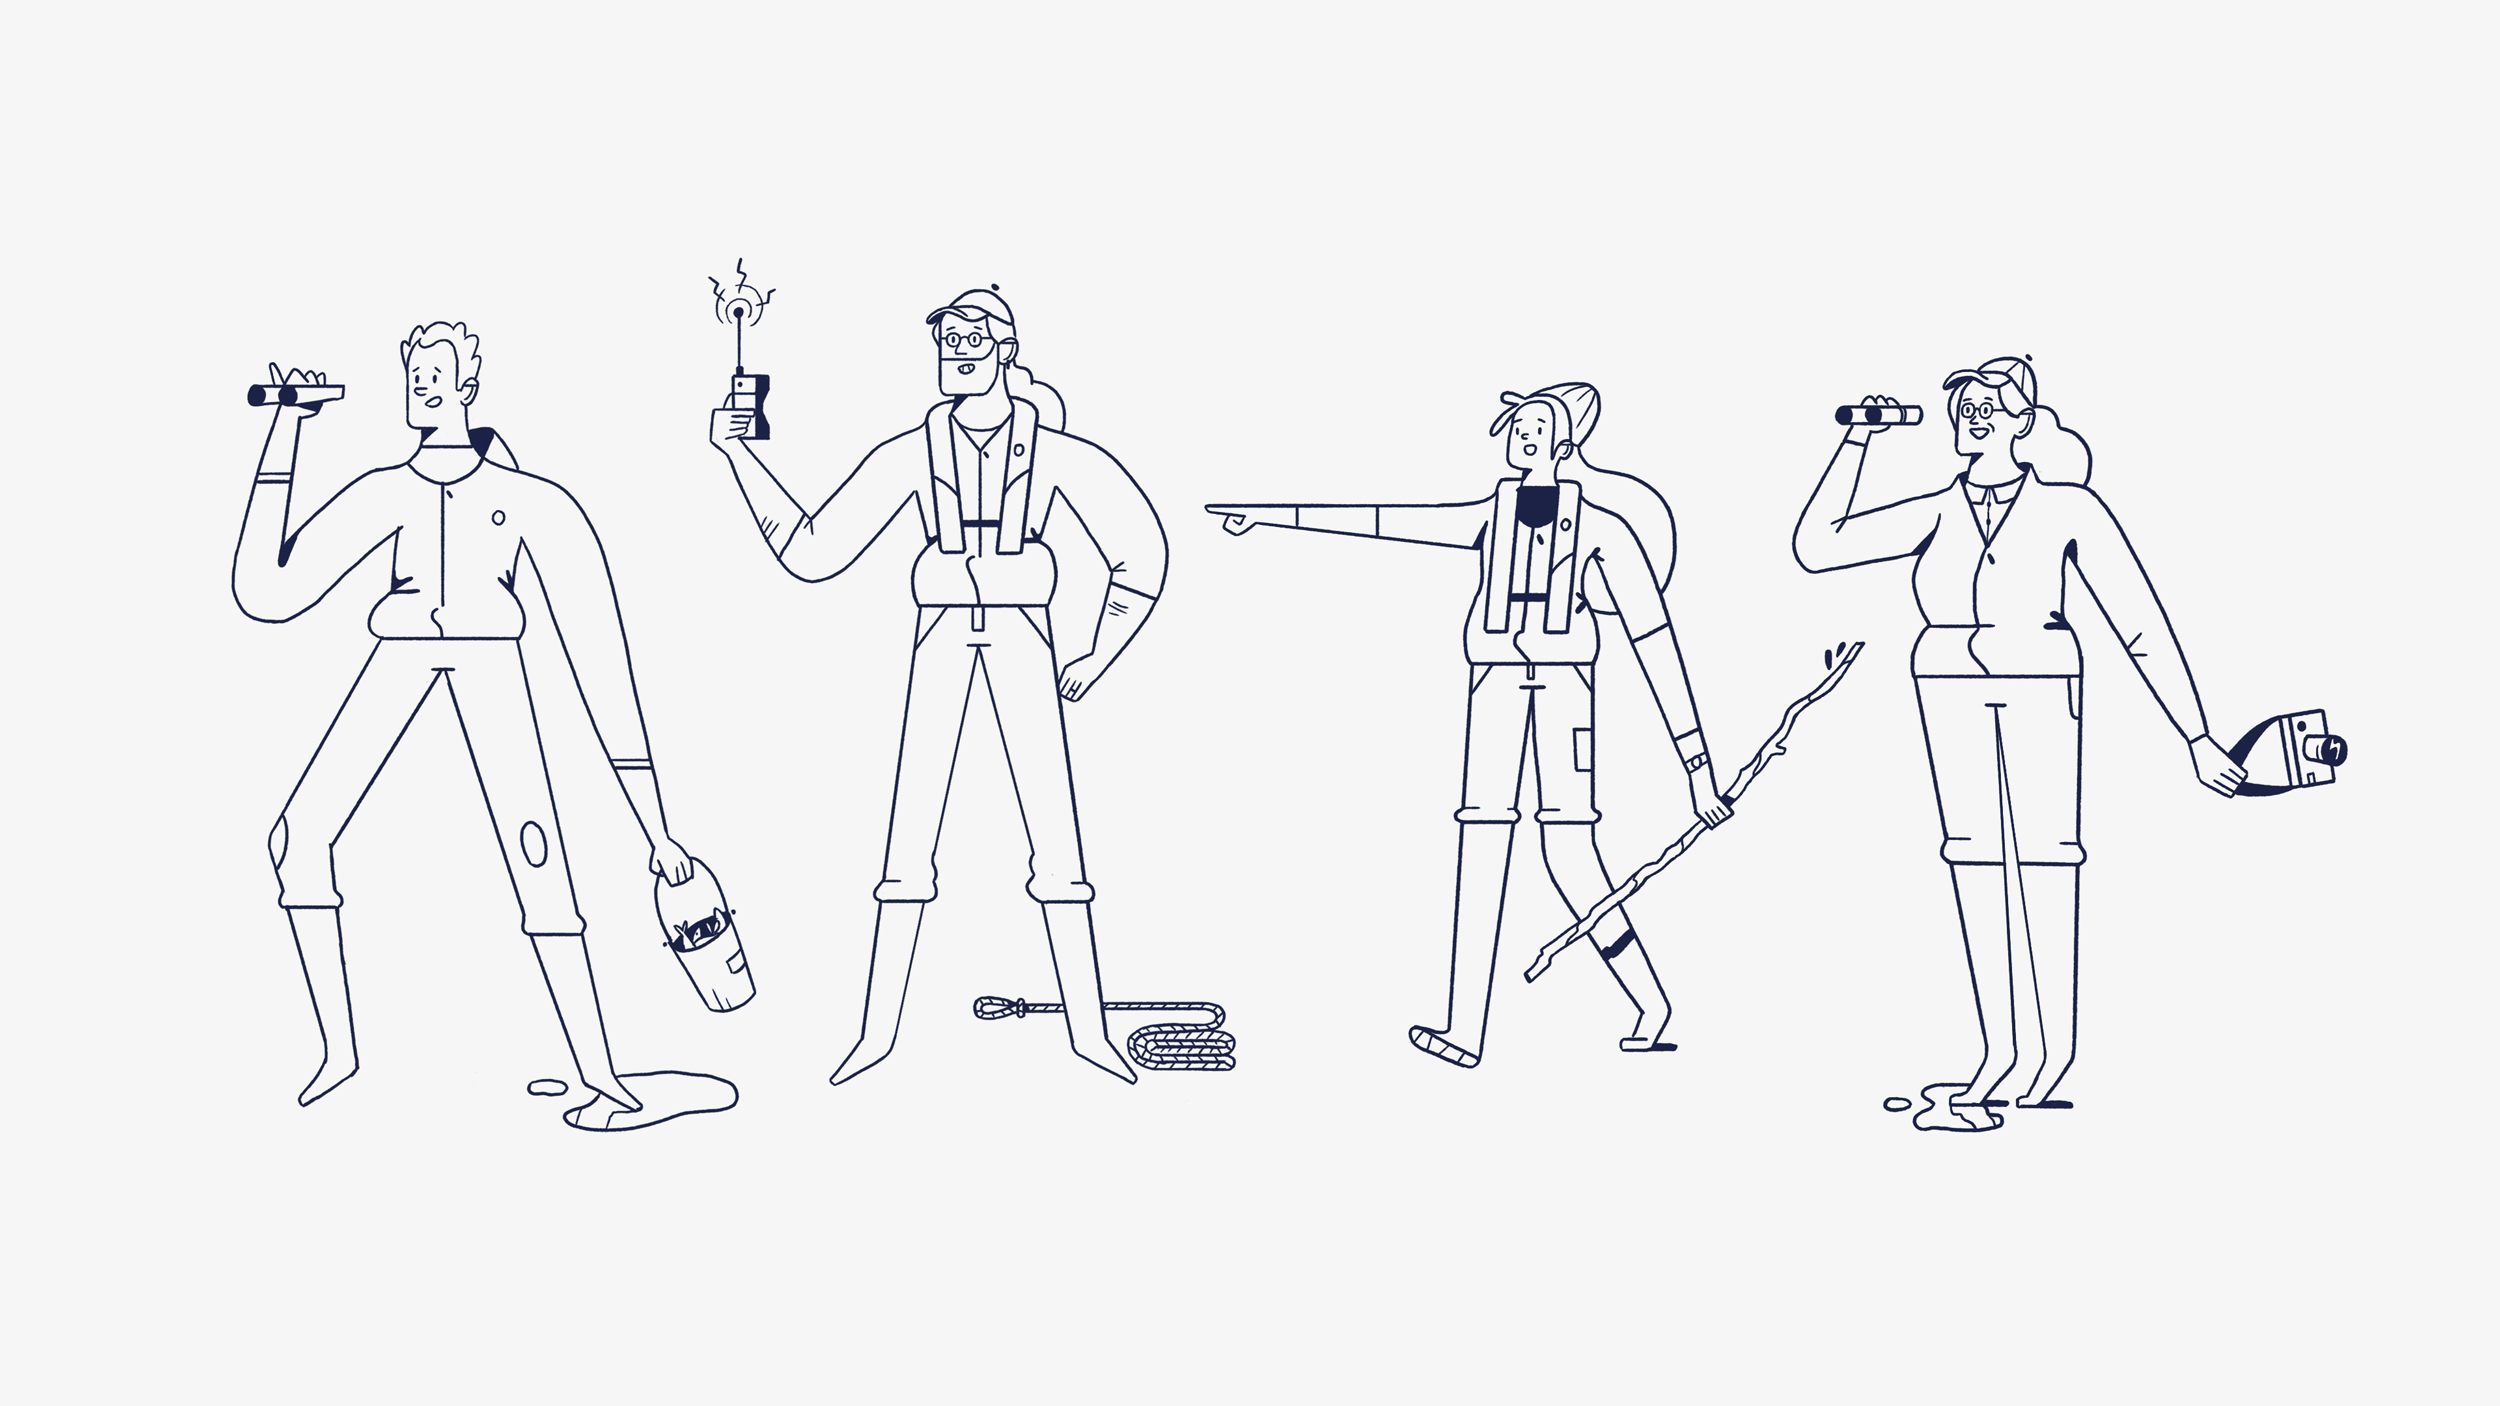 NFB_characters_sketches.png